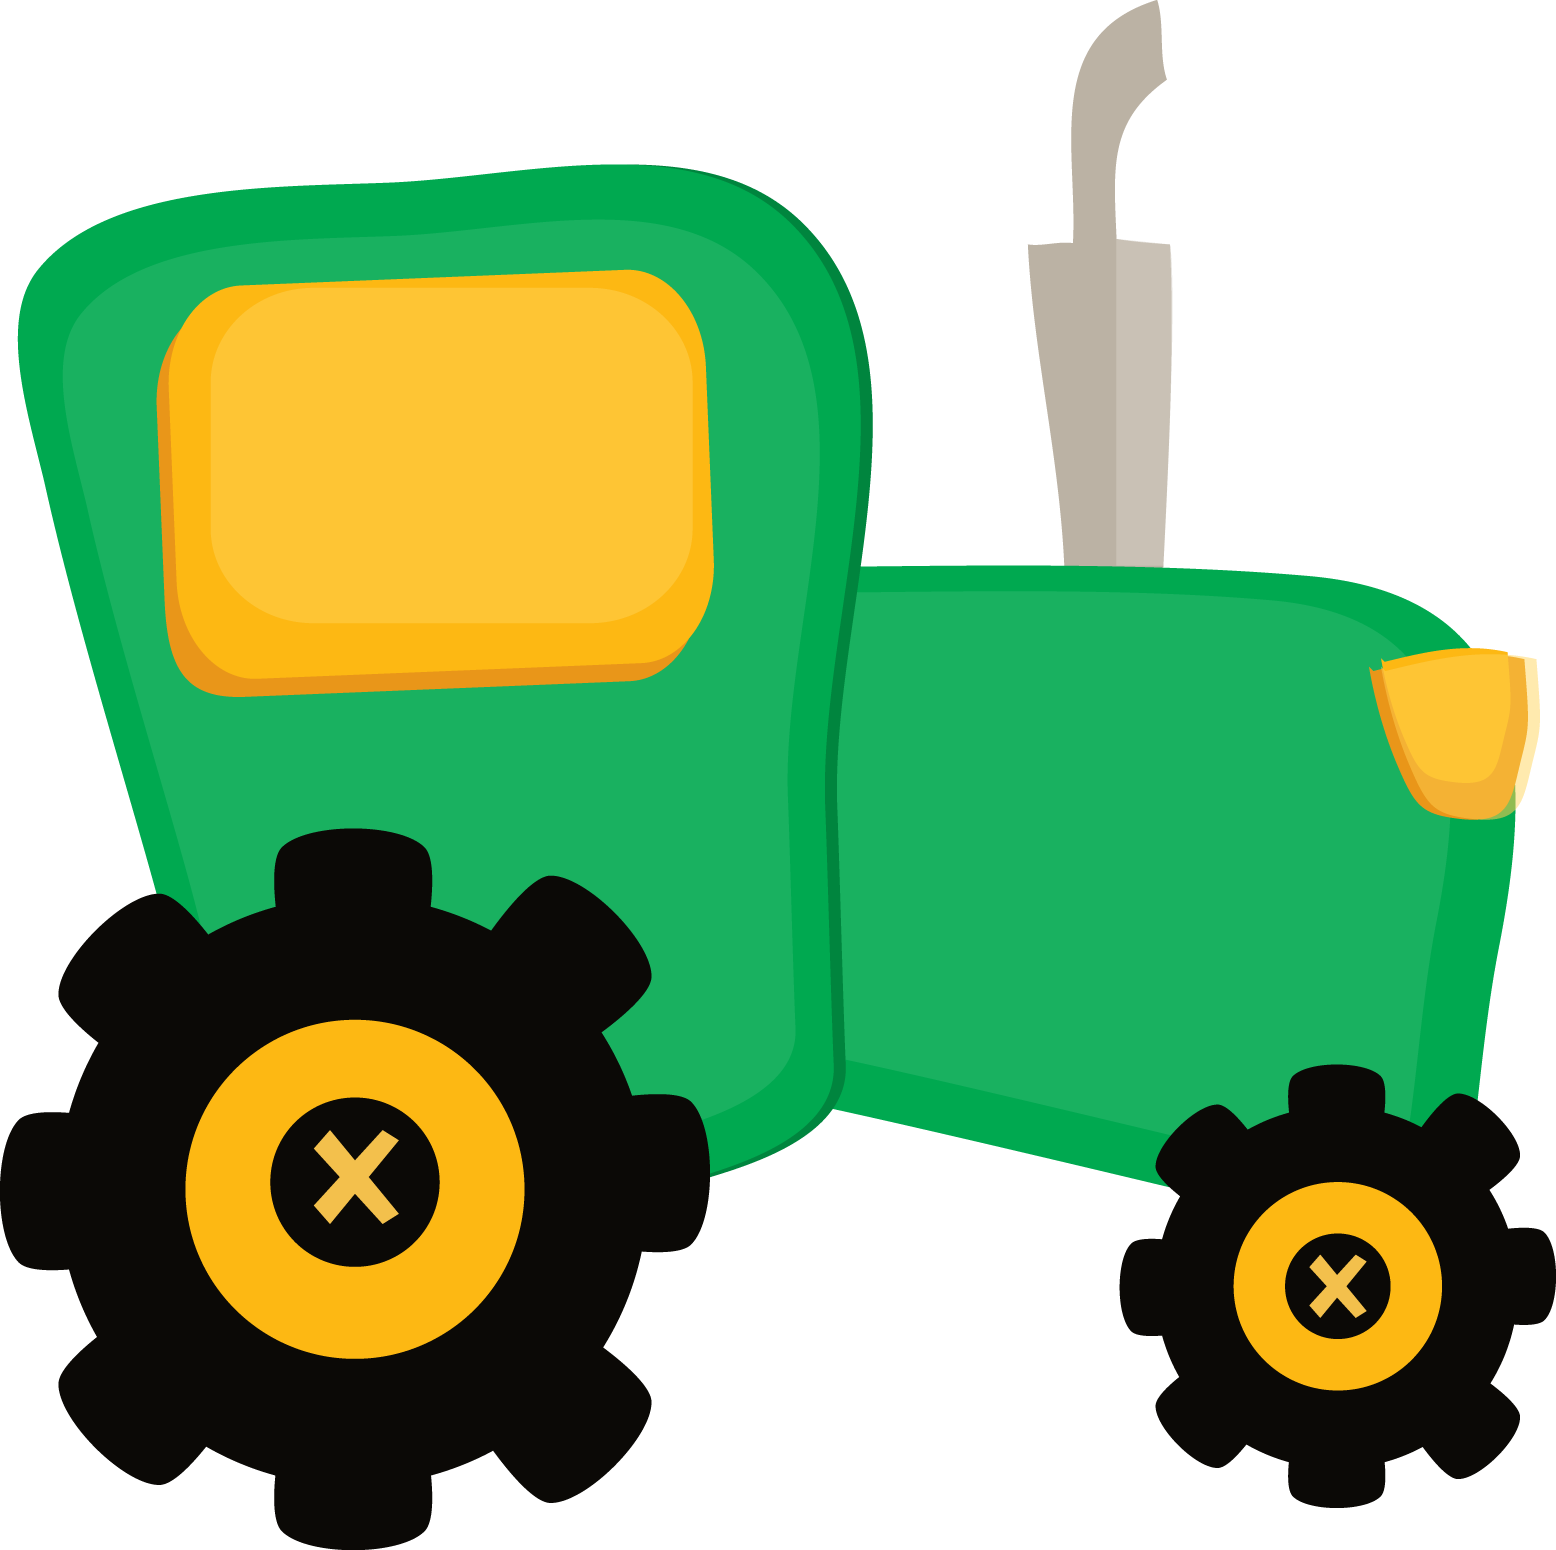 Backhoe clipart cute. Yellow converse sneakers tractor